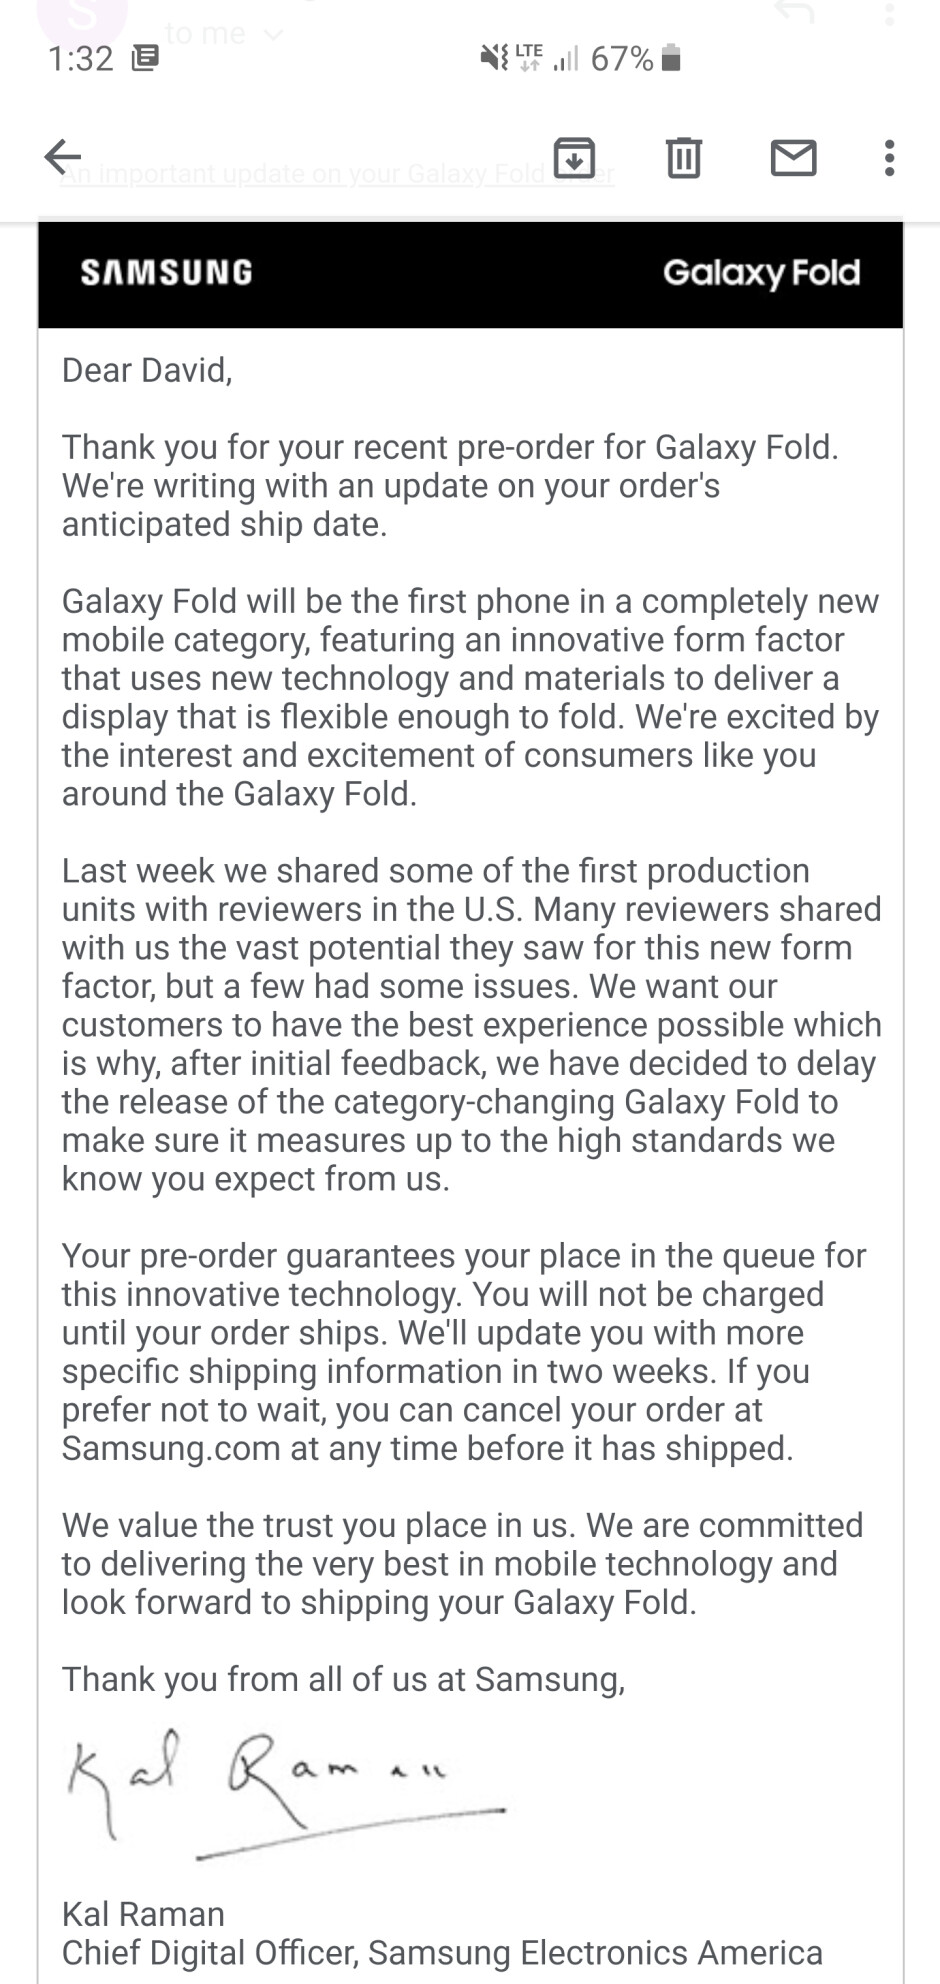 New Galaxy Fold release date coming in 'two weeks,' here's the pre-order delay notice to early adopters